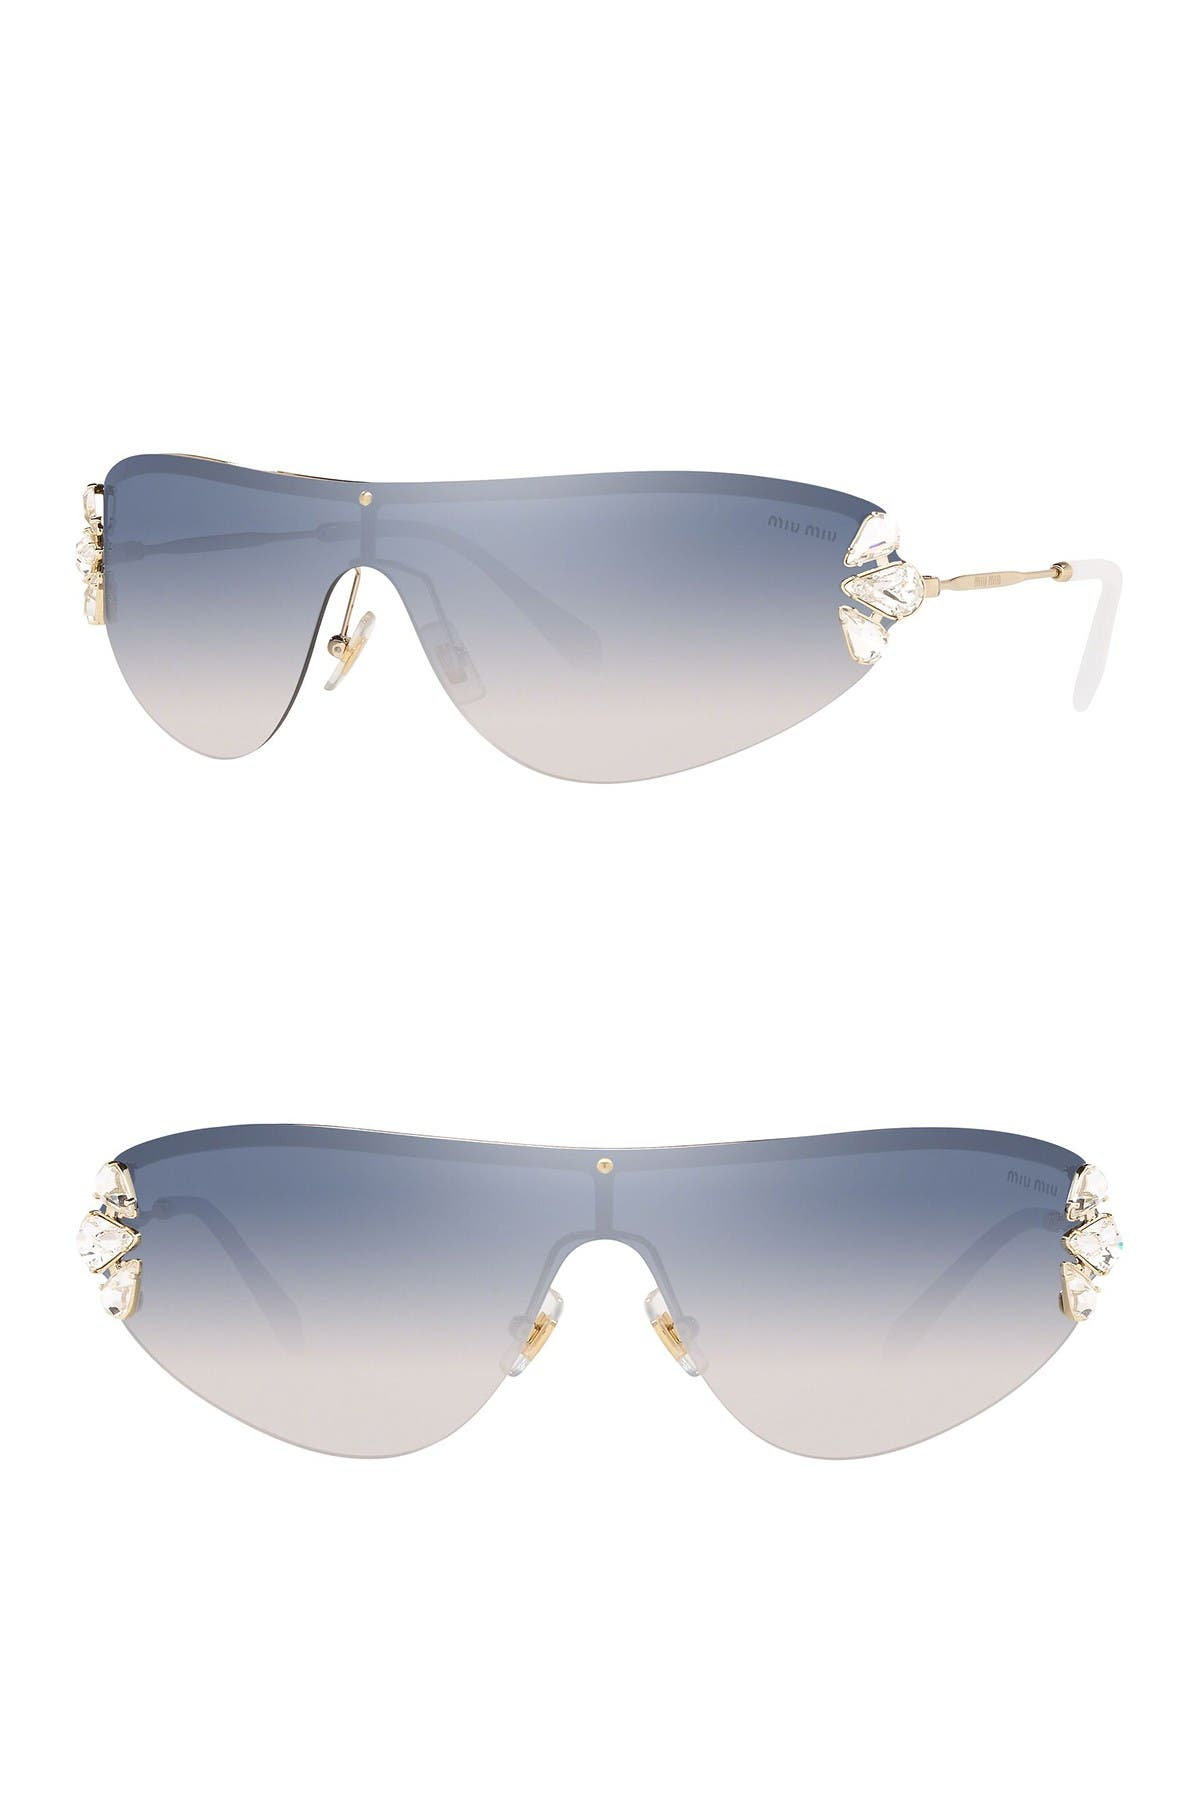 Image of MIU MIU Irregular Shape Shield Sunglasses